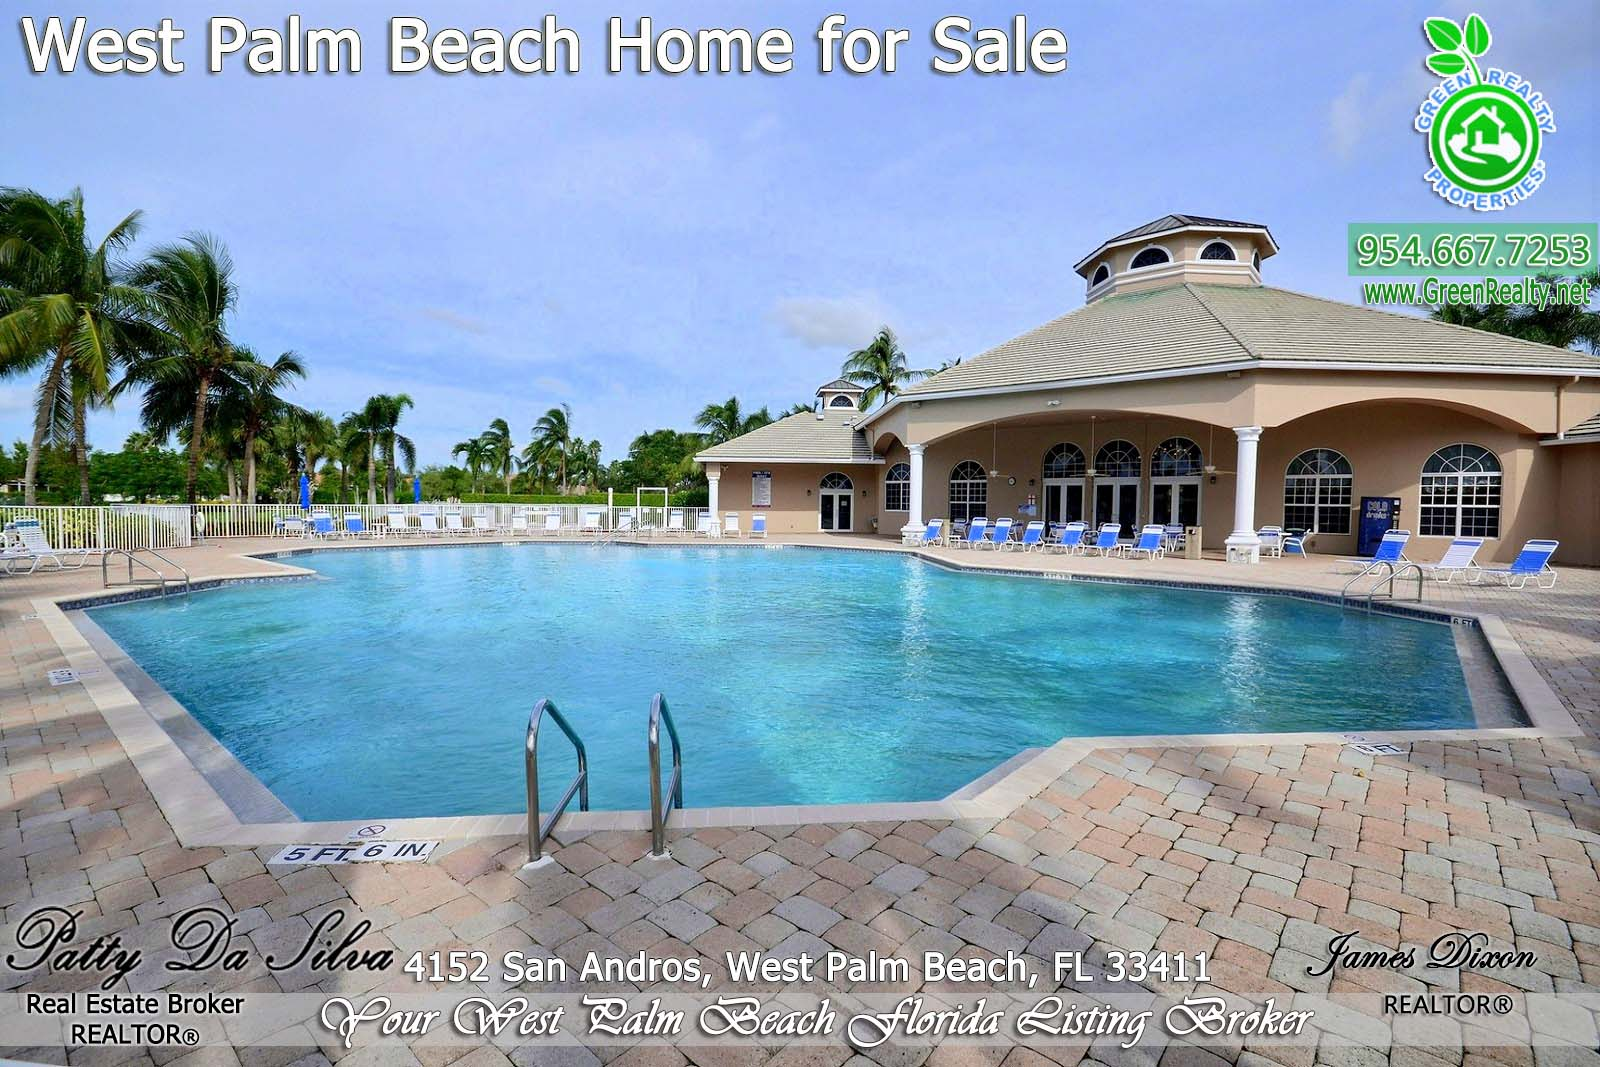 West Palm Beach Real Estate - 4152 San Andros (26)_1